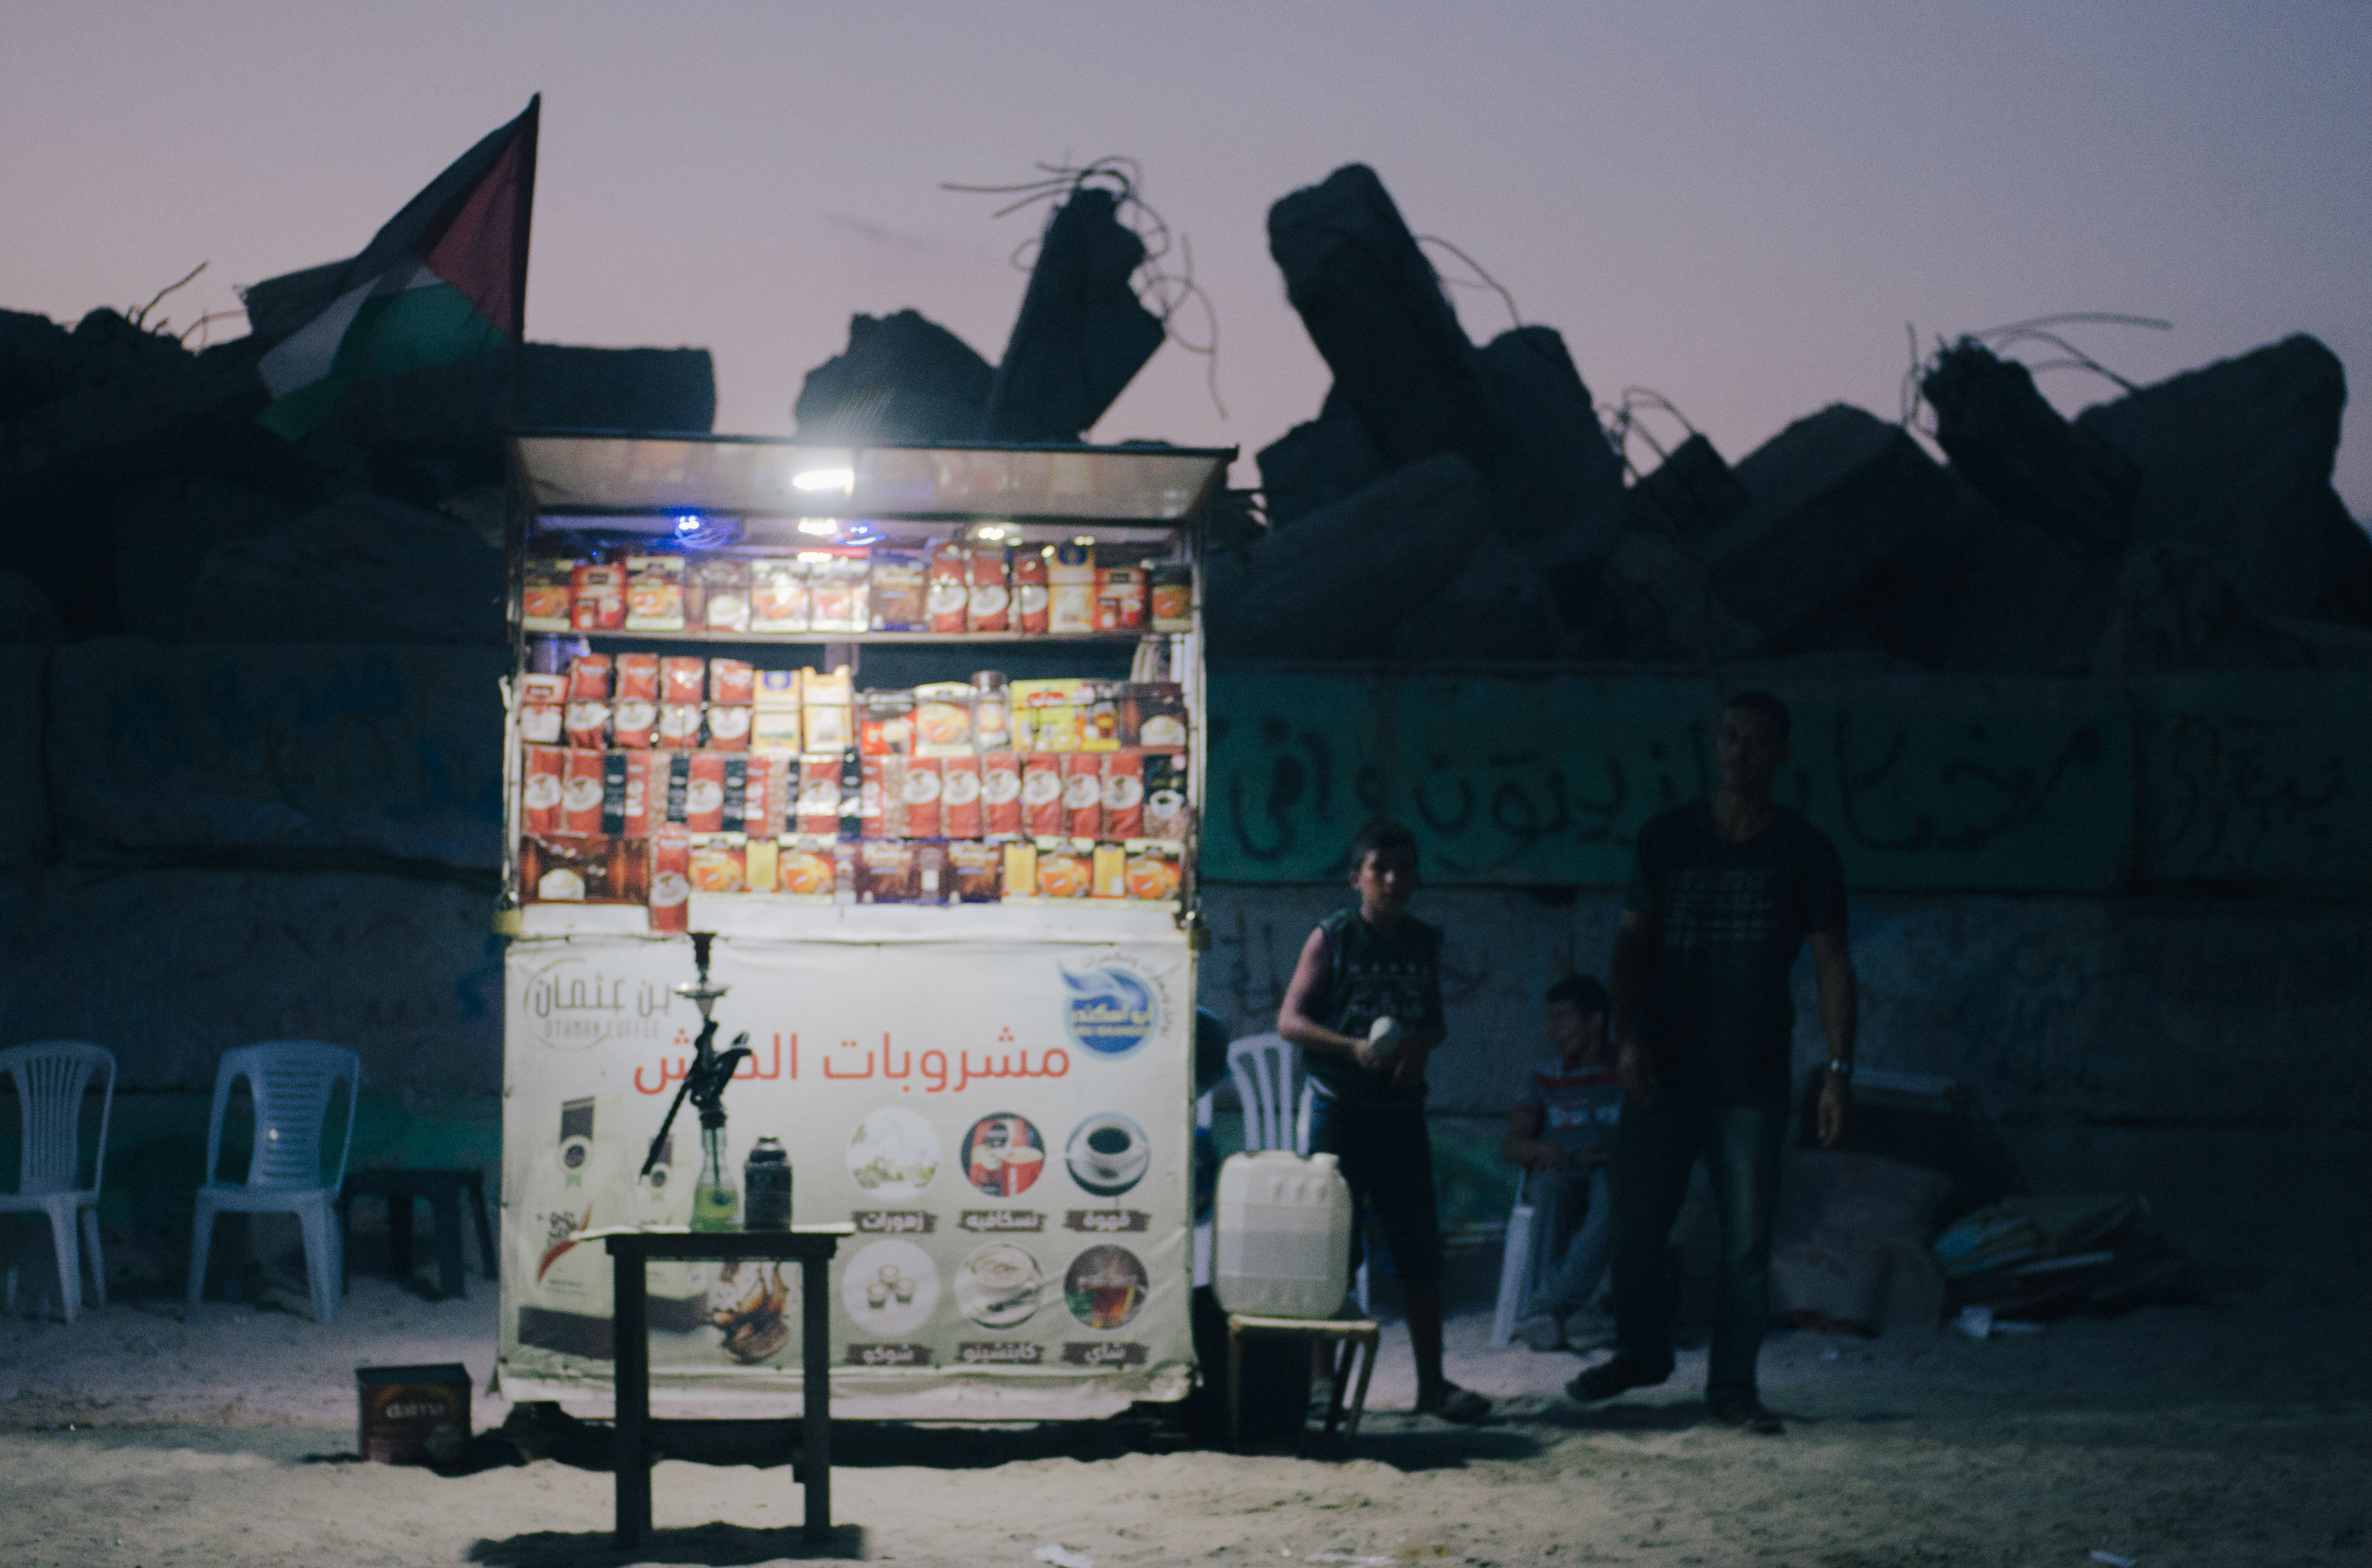 As the sun sets on Gaza, little pinpricks of light begin dotting the darkened coastline. Battery-powered LEDs fastened to coffee stalls cut against the night in the power-starved enclave, the only source of illumination for teen vendors preparing for nightly gatherings by the sea